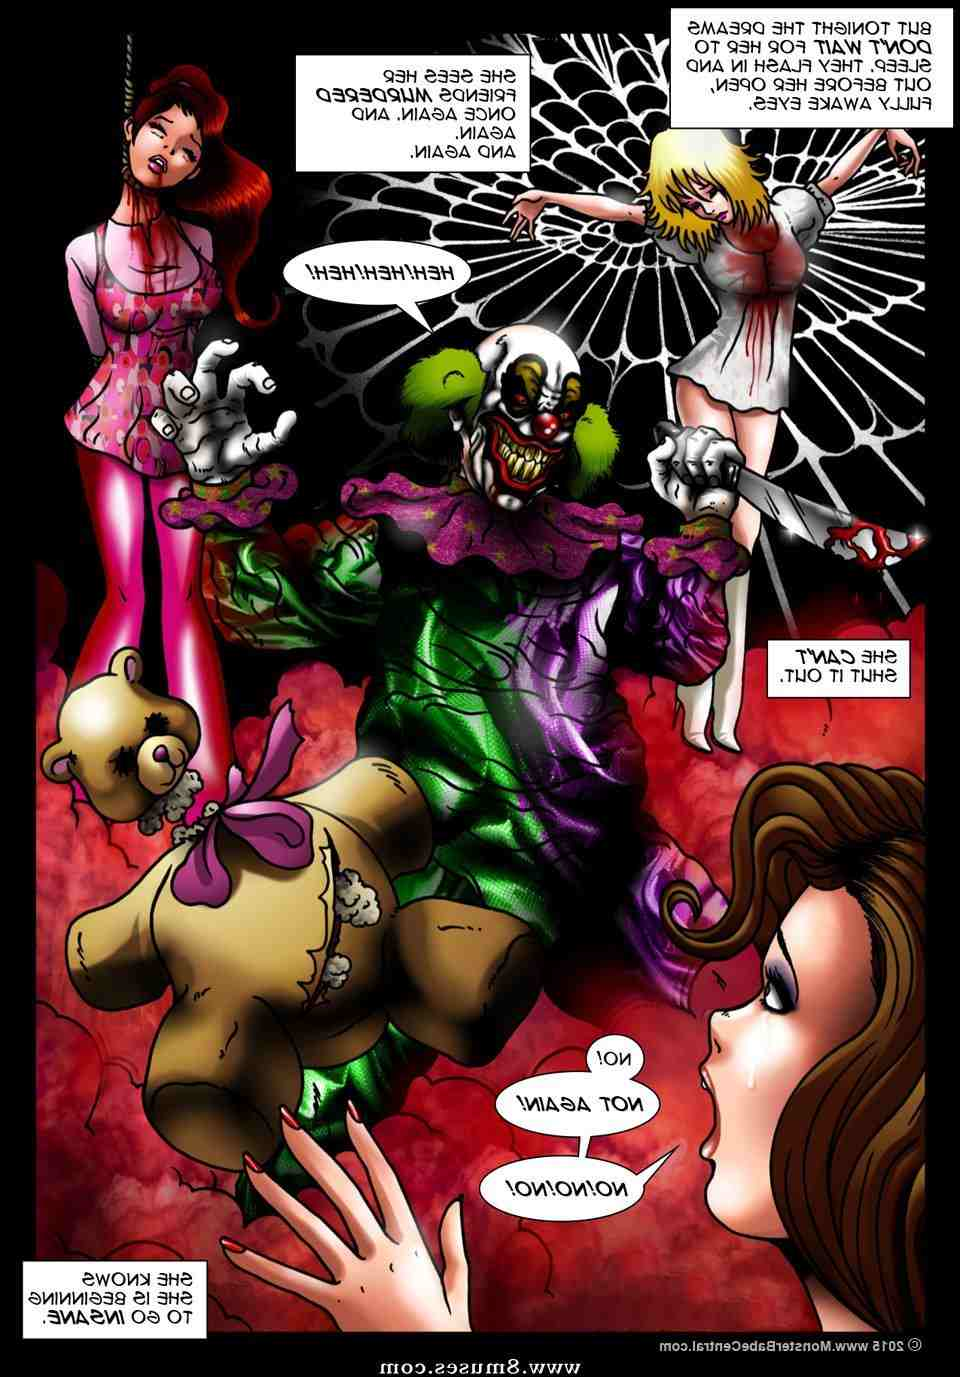 Central-Comics/Horror-Babe-Central/Fable-of-Fright Fable_of_Fright__8muses_-_Sex_and_Porn_Comics_278.jpg